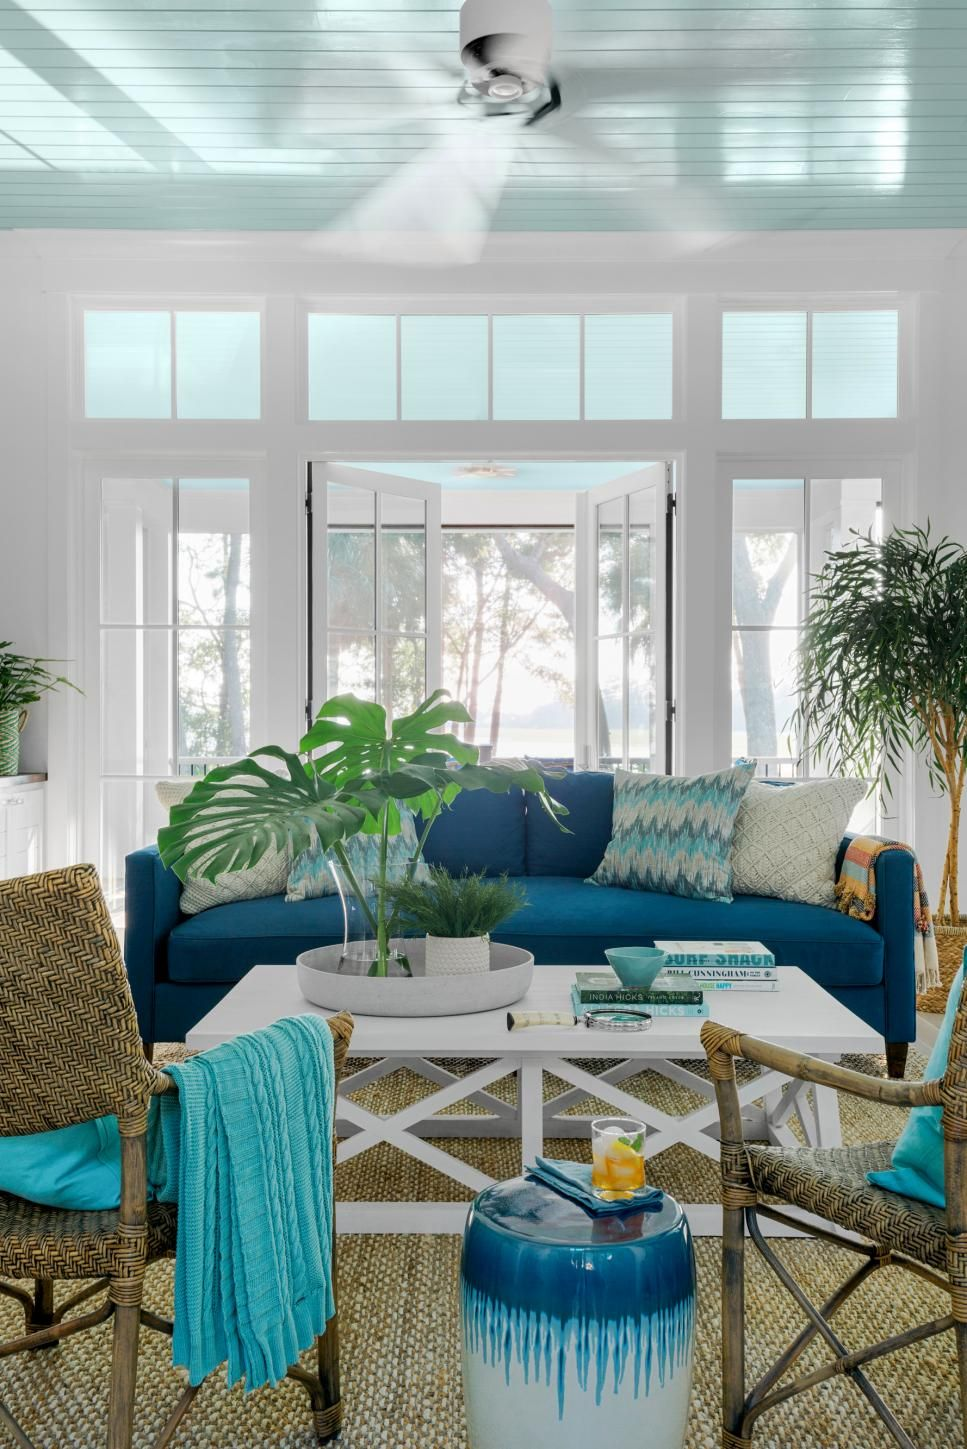 Hgtv Dream Home 2020 Great Room Pictures Hgtv Dream Home 2020